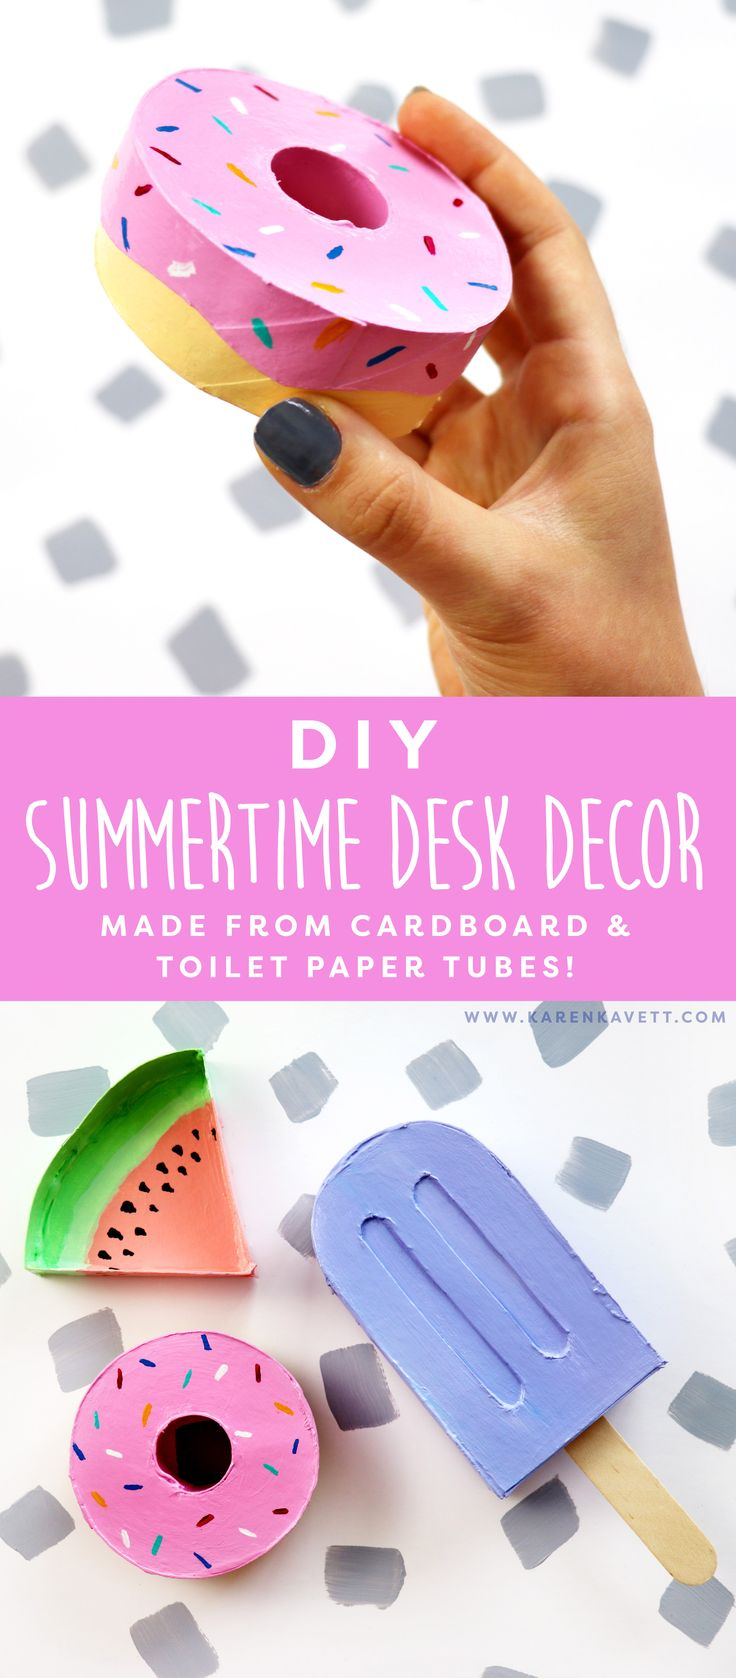 Looking to spruce up your desk? Why not incorporate summers top trends with these cute DIY ideas from Karen Kavett. These simple ideas will brighten up your office work space in no time.